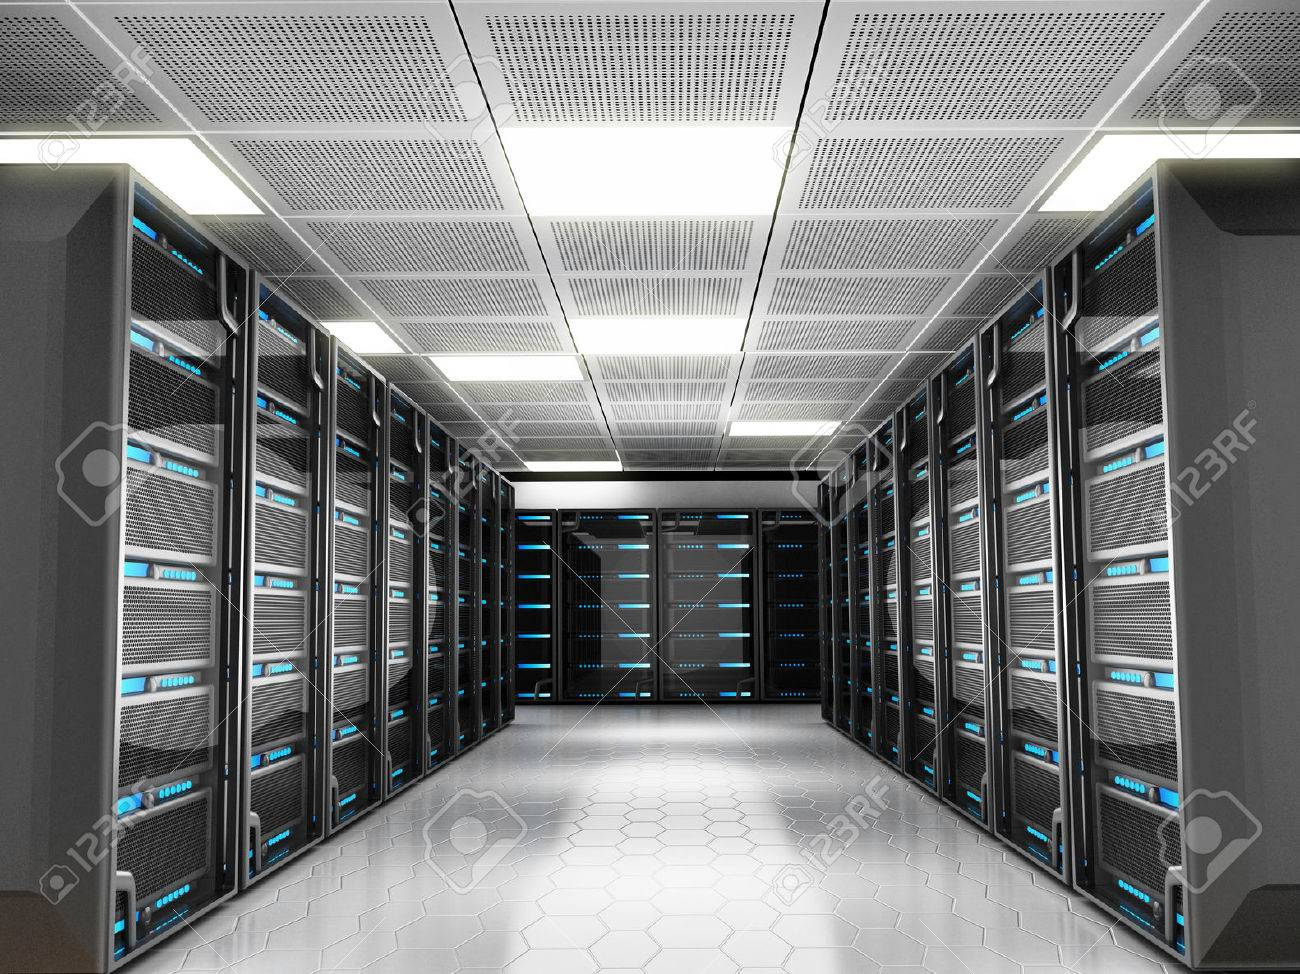 Network server room with high technology equipment Stock Photo - 29622976